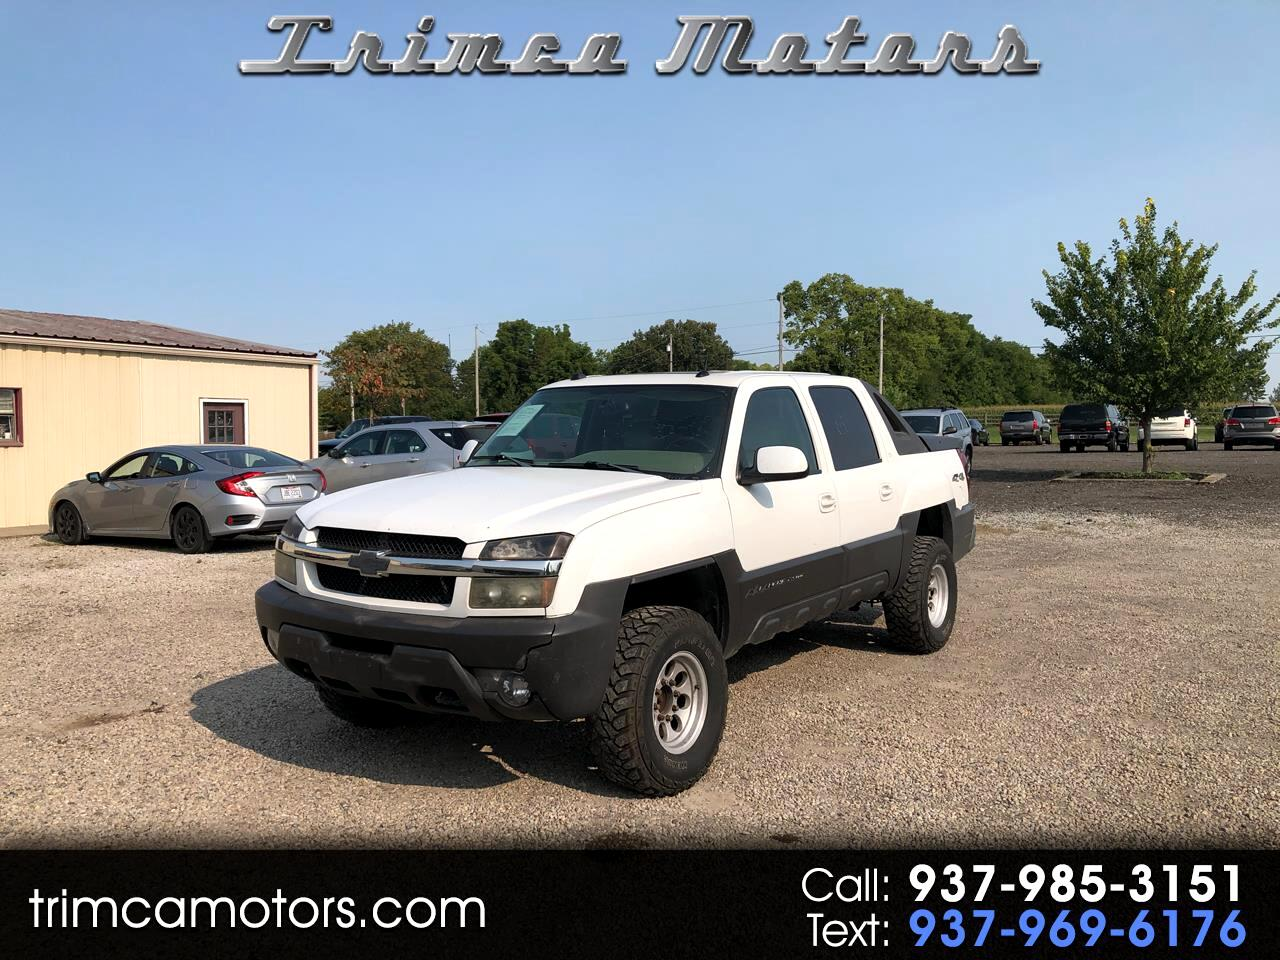 "Chevrolet Avalanche 2500 5dr Crew Cab 130"" WB 4WD LT 2005"